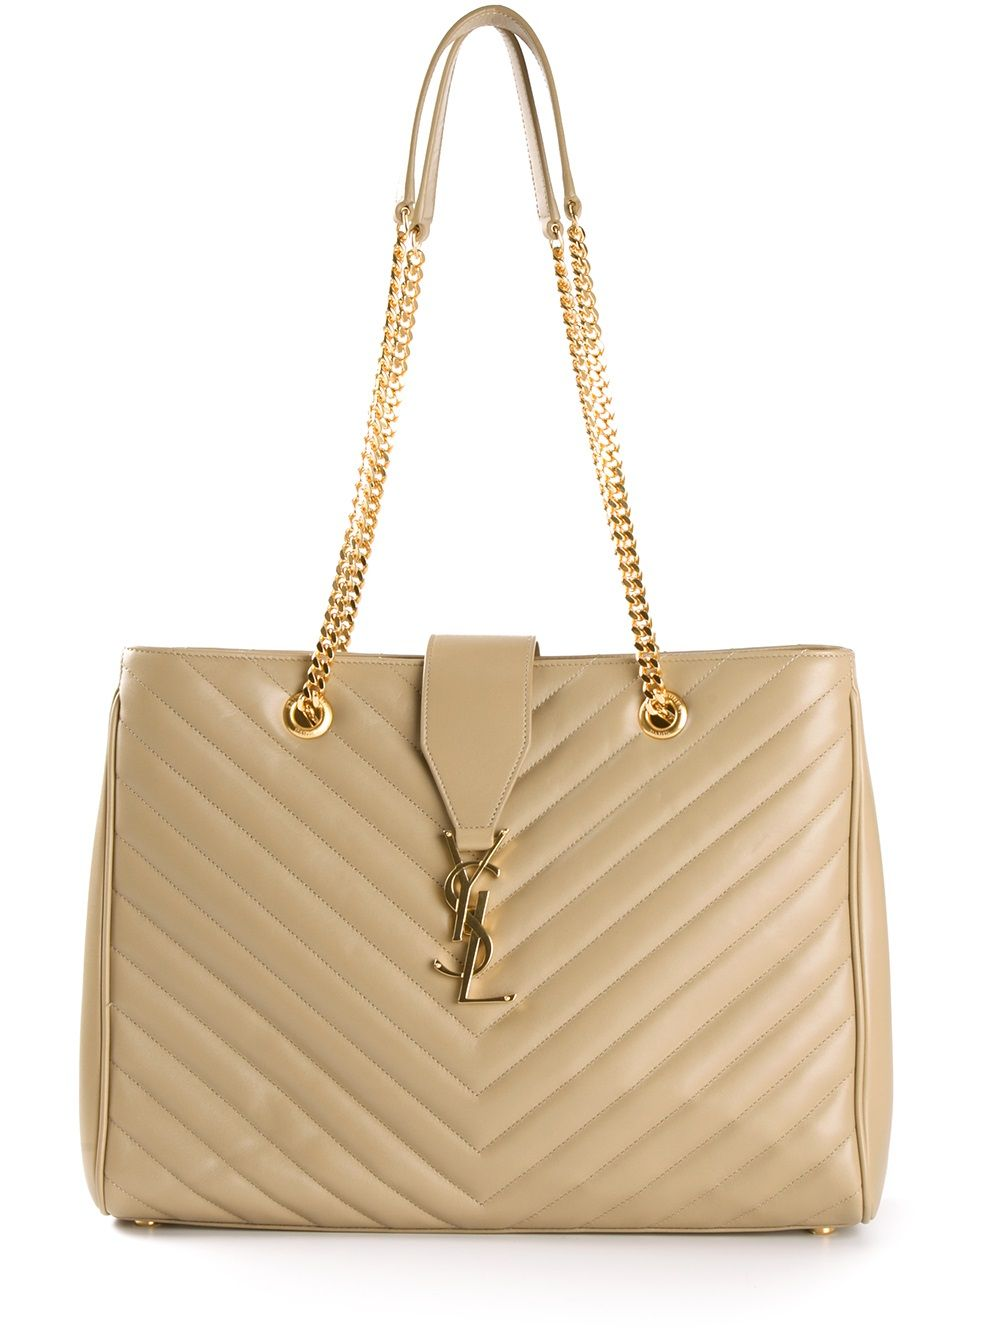 fbd14fa26000 Saint laurent Cabas Chyc Ribbed Tote in Beige (nude   neutrals)